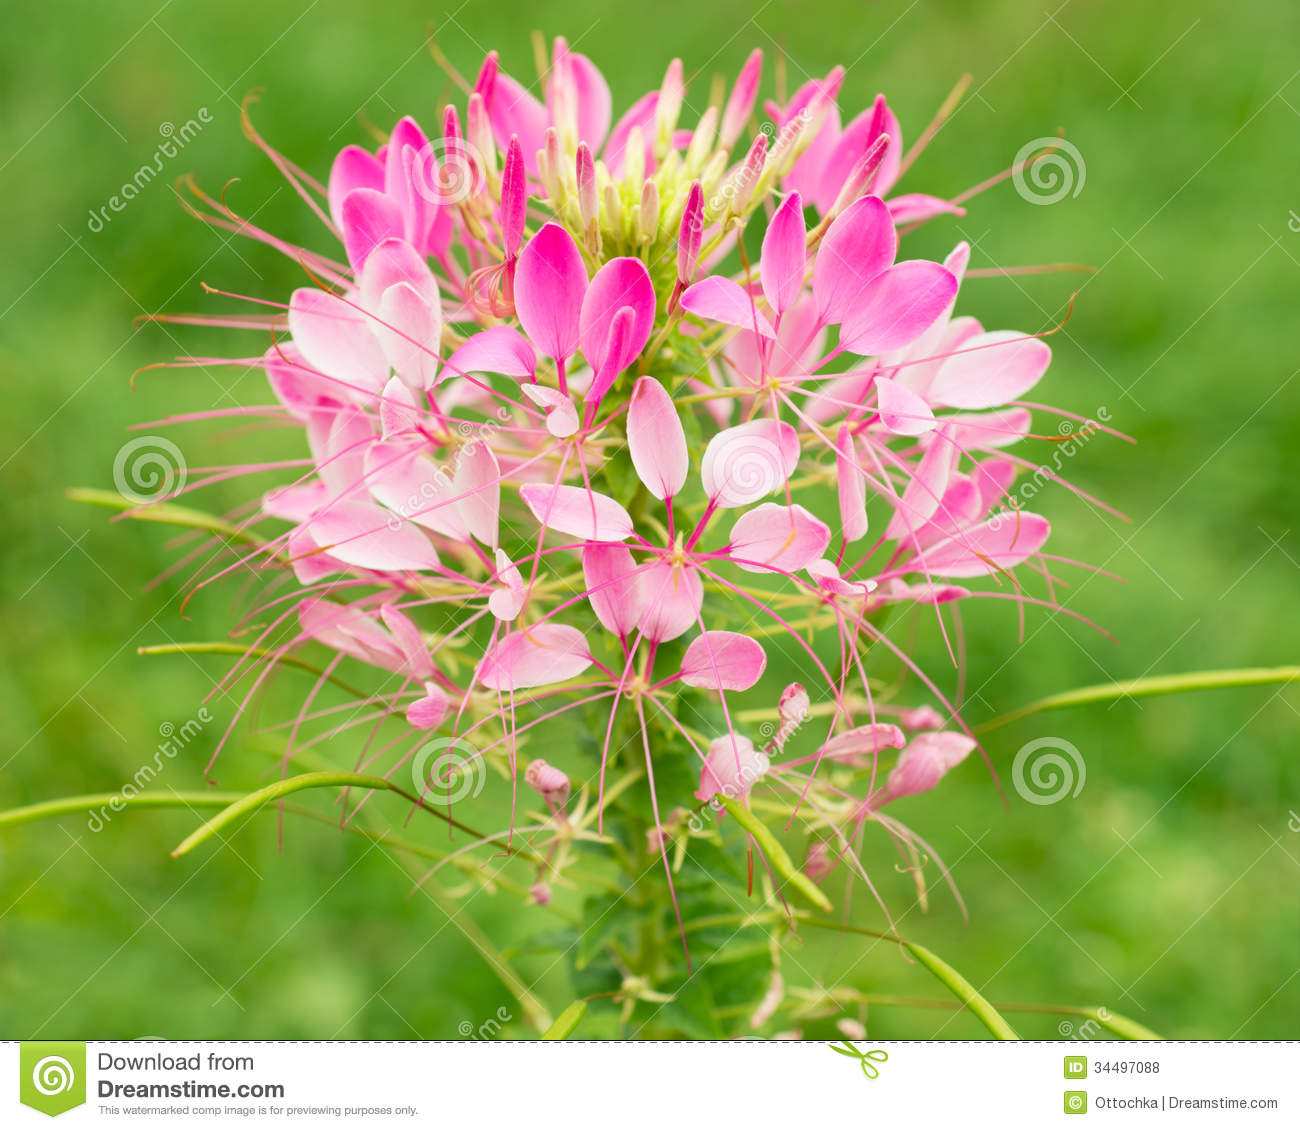 Cleome Flower In Nature Royalty Free Stock Photos.